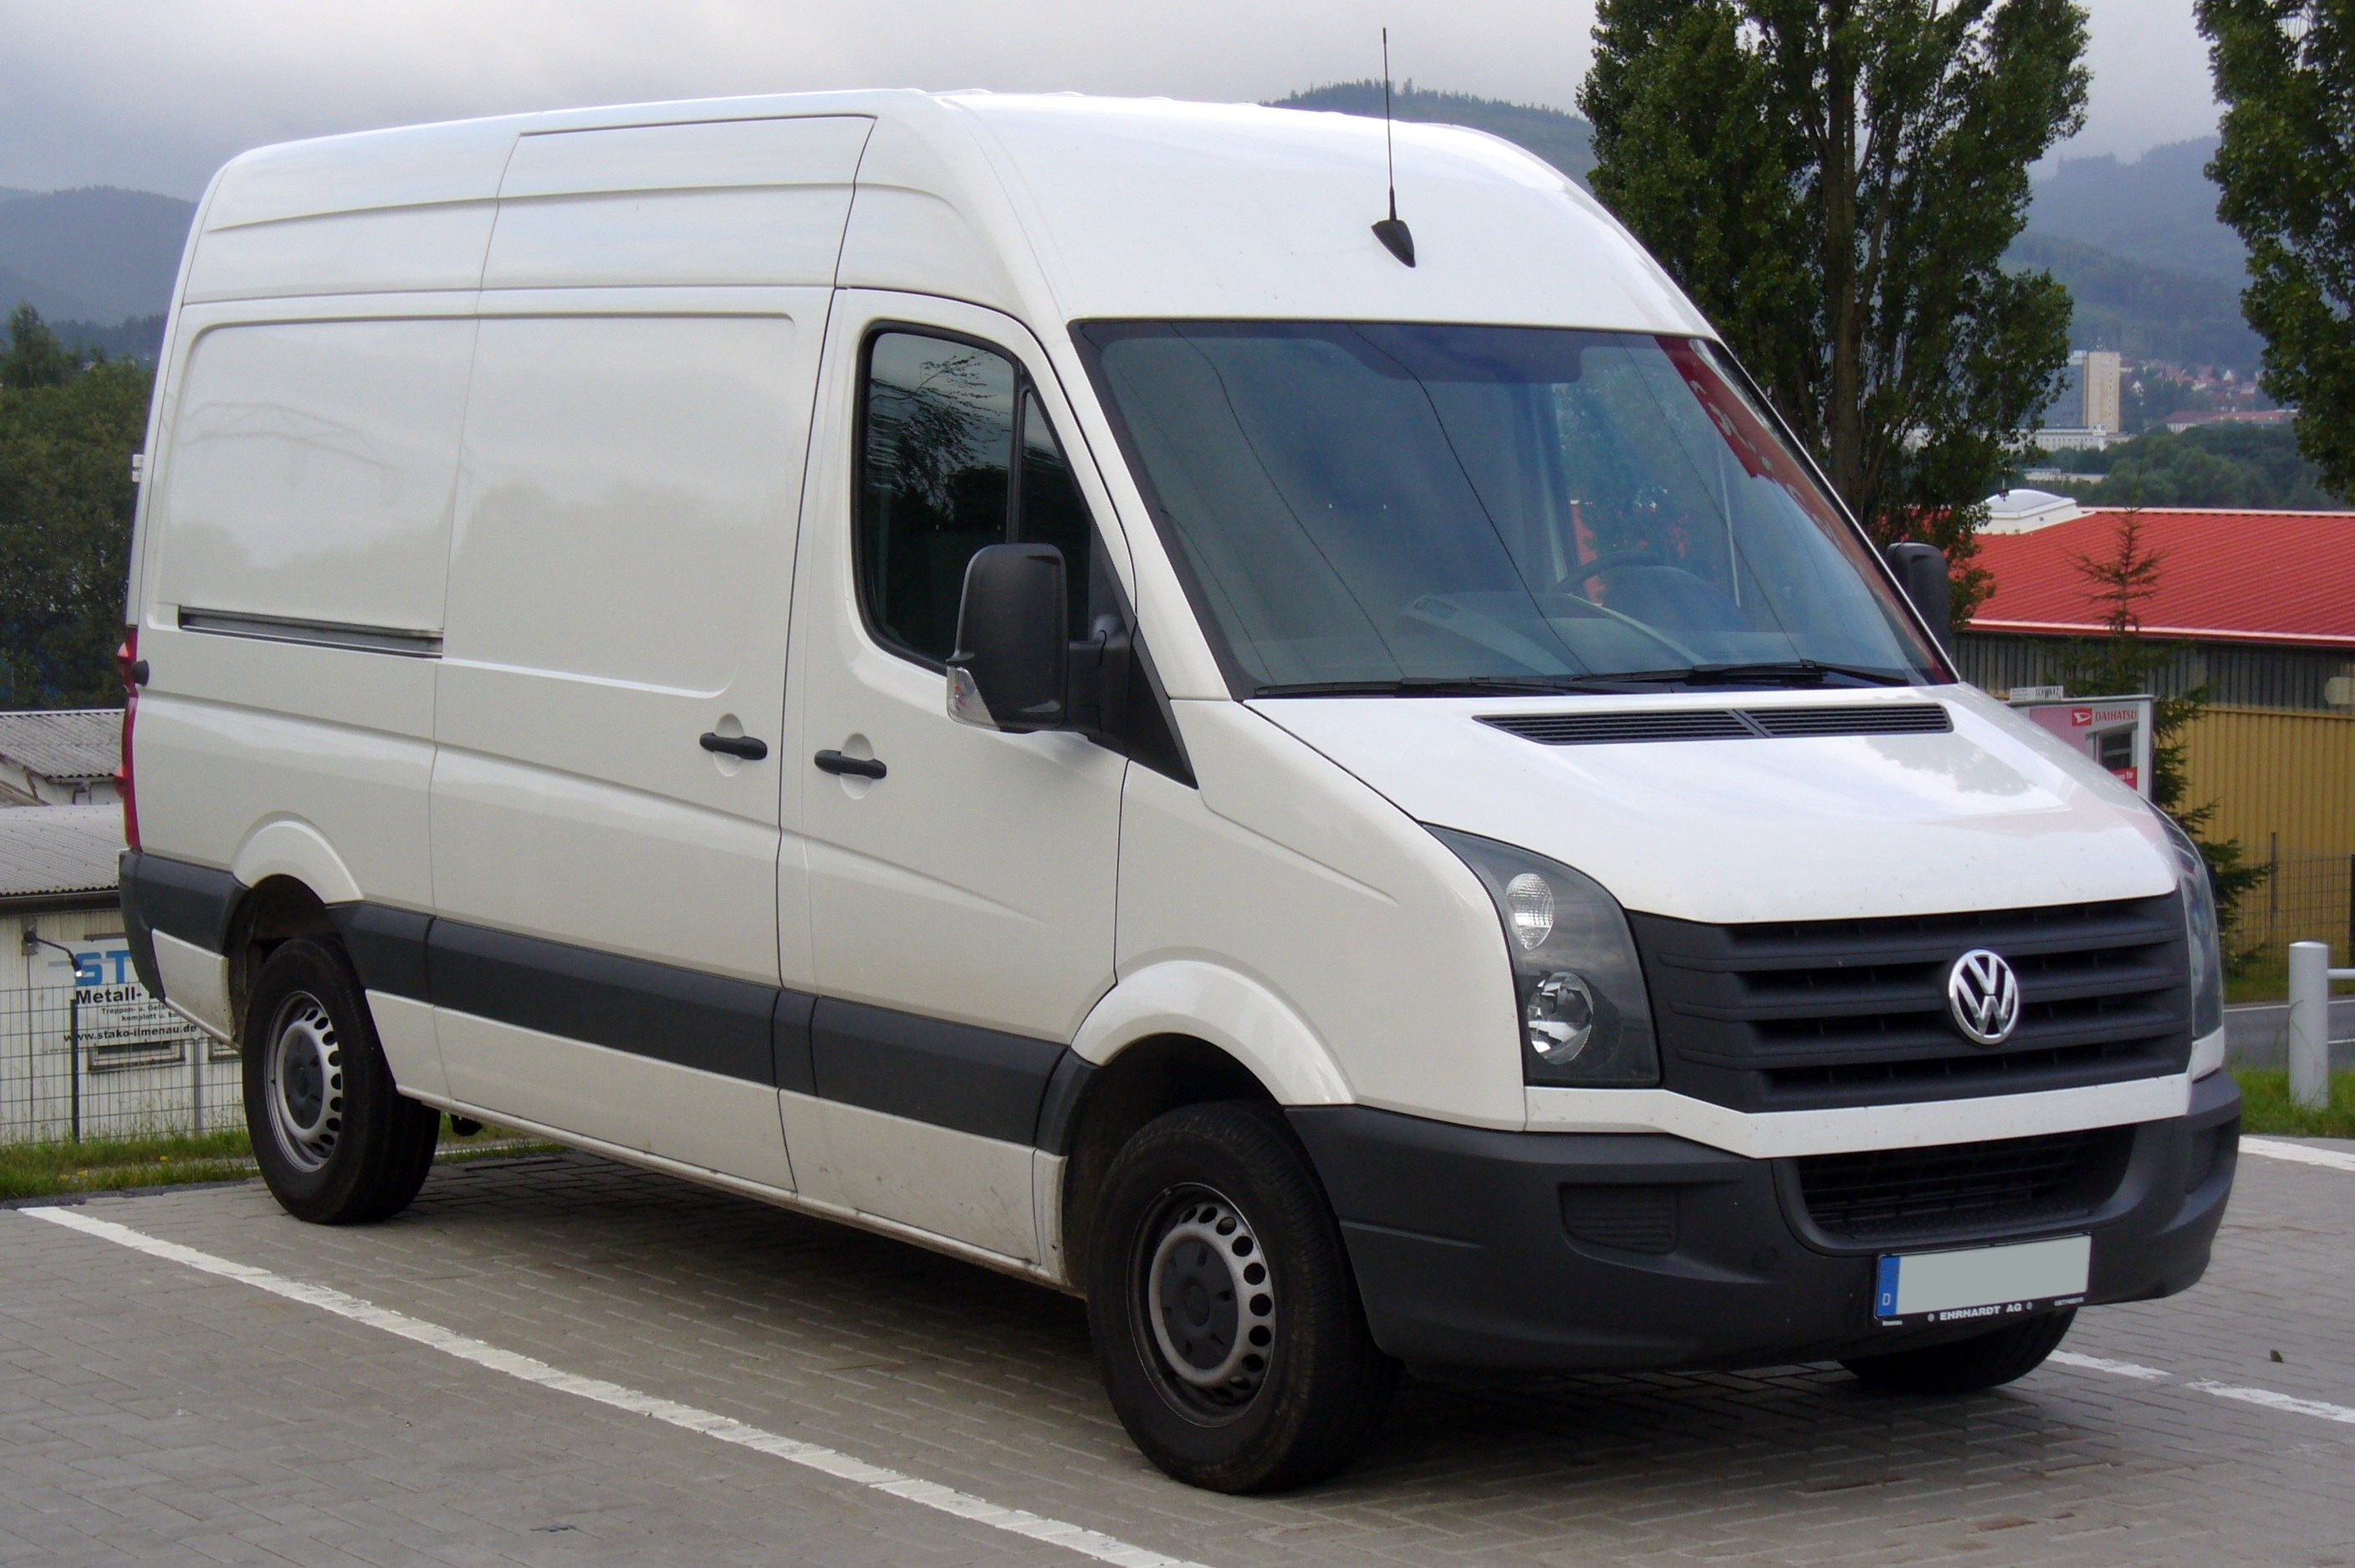 http://upload.wikimedia.org/wikipedia/commons/e/e8/VW_Crafter_2.0_TDI_Facelift.JPG